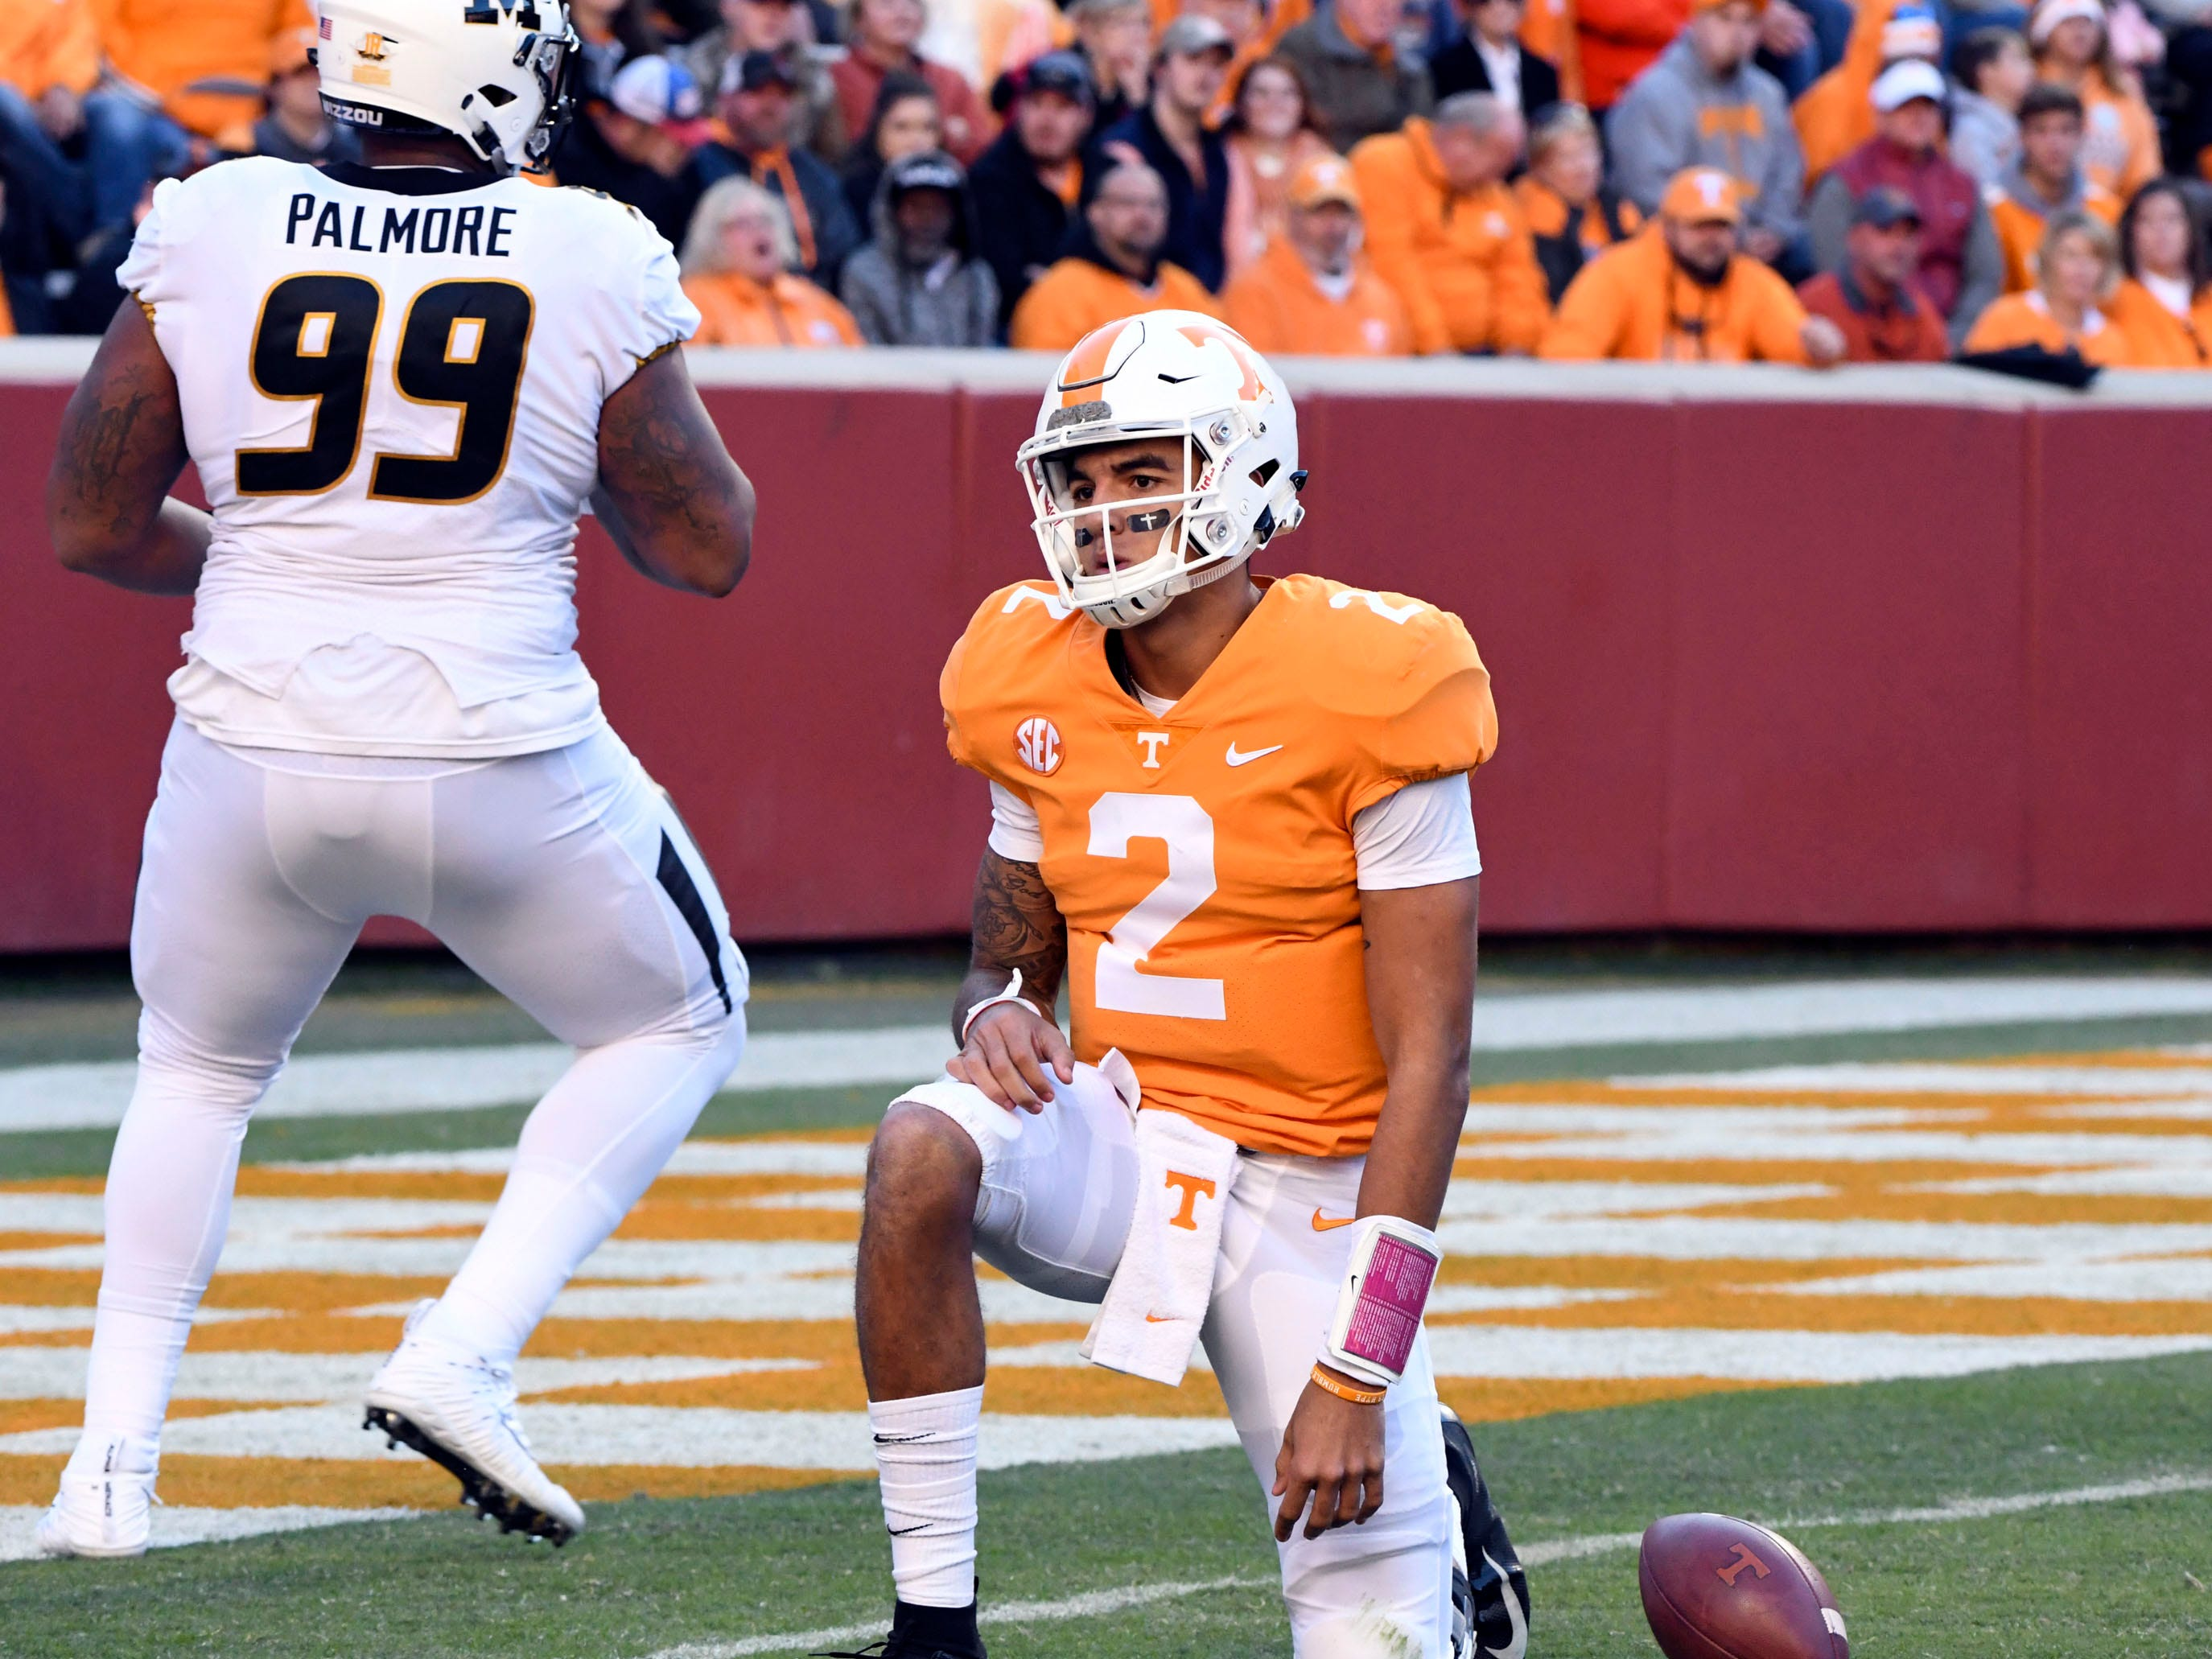 Tennessee quarterback Jarrett Guarantano (2) gets back up after getting sacked by Missouri defensive lineman Walter Palmore (99) during the Tennessee and Missouri football game on Saturday, November 17, 2018.